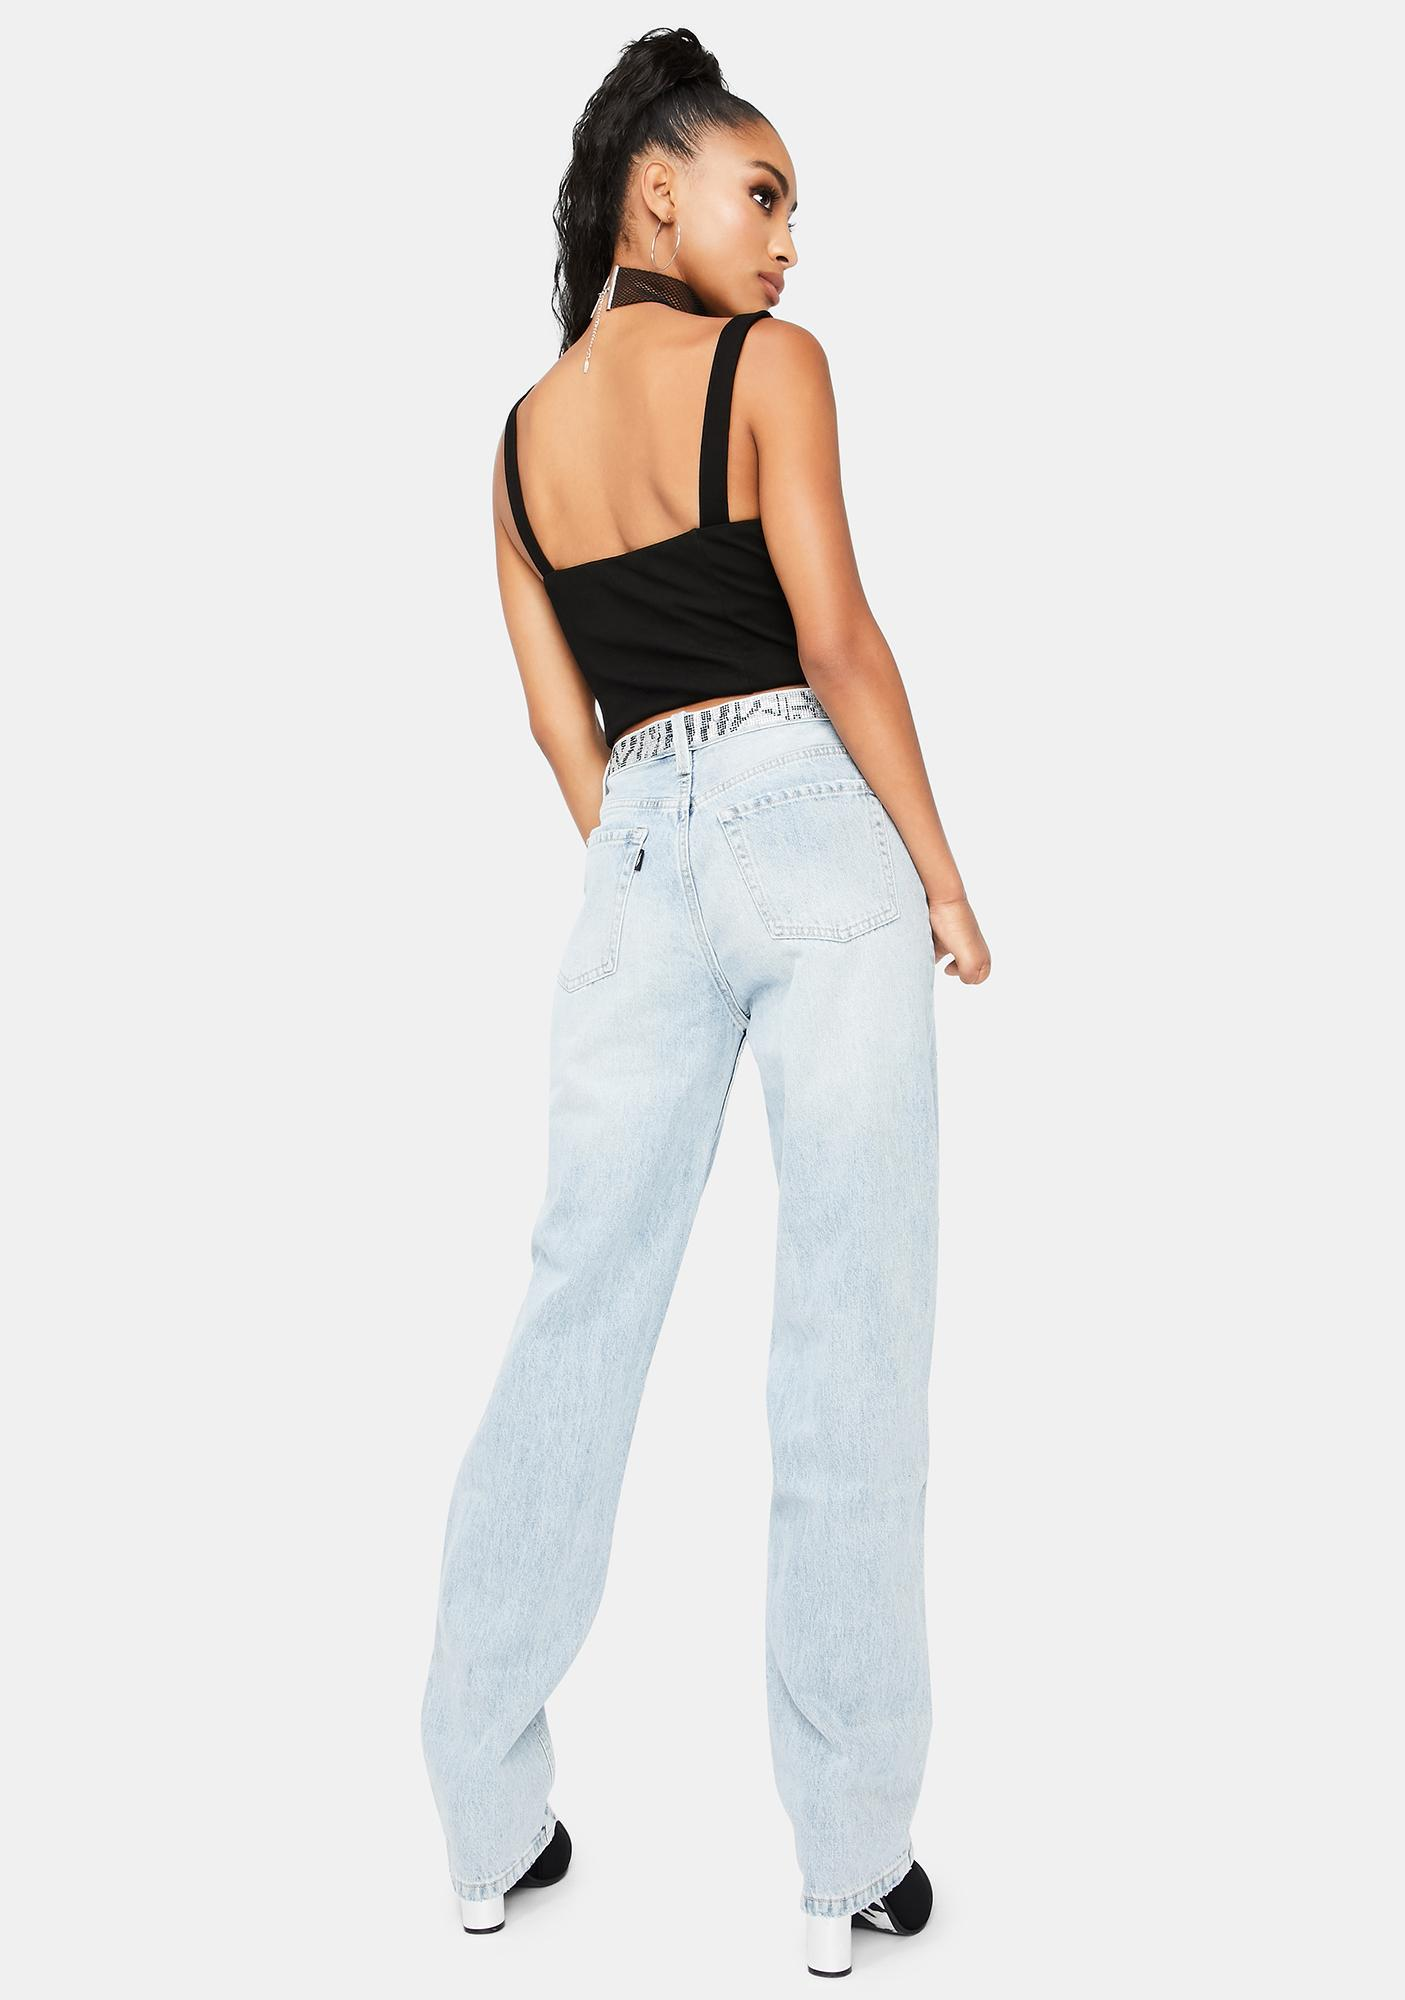 Neon Blonde Lazy Lover Jeans